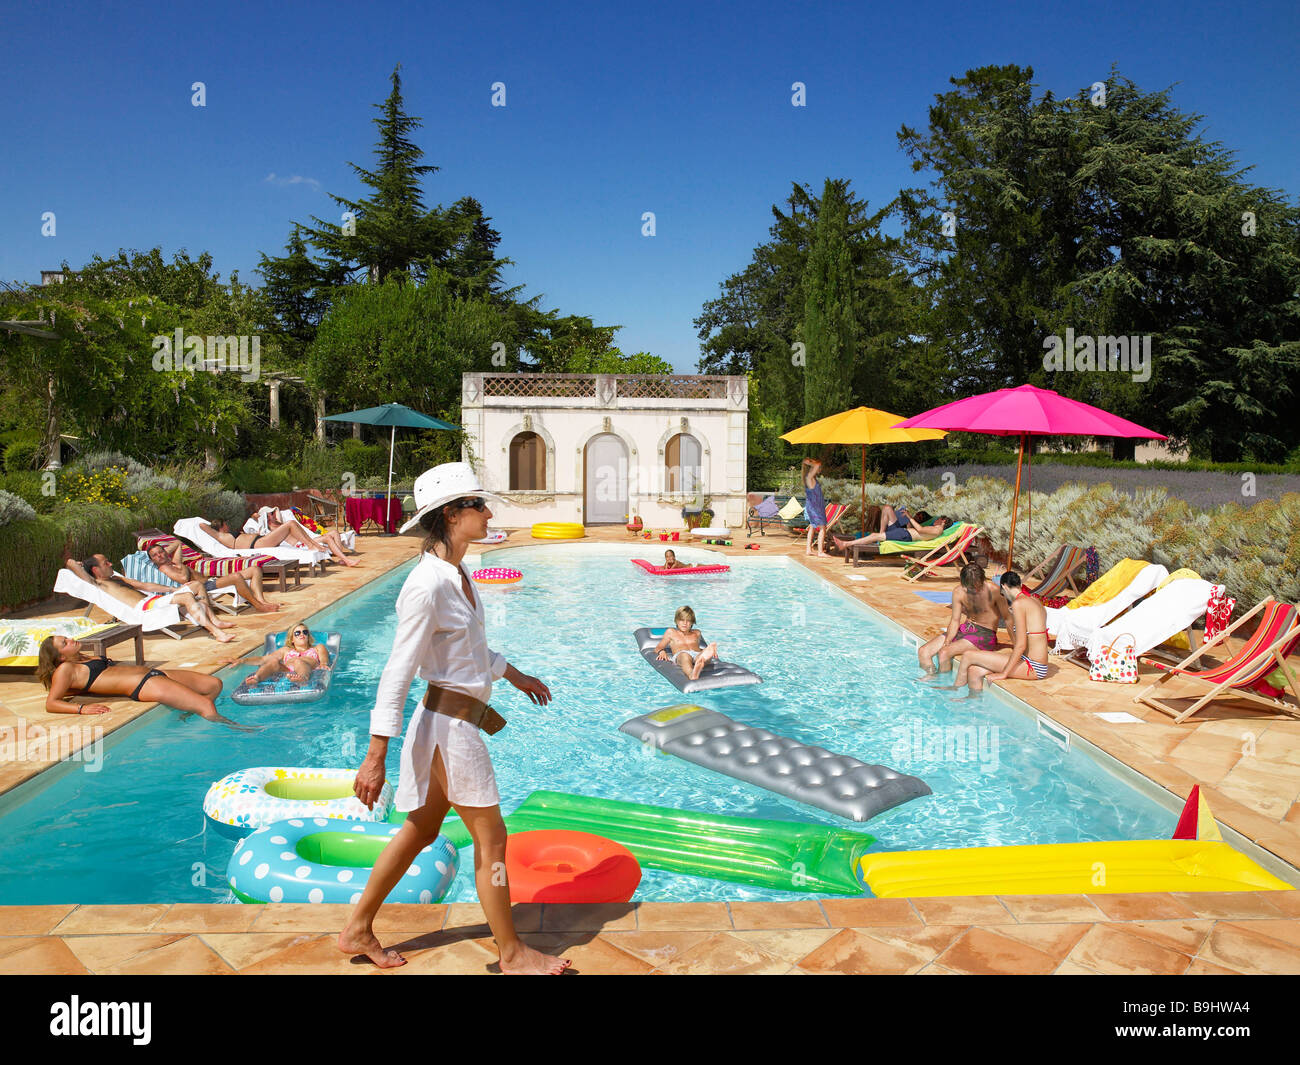 Around The Pool People Enjoying Summer Around The Pool Stock Photo Royalty Free